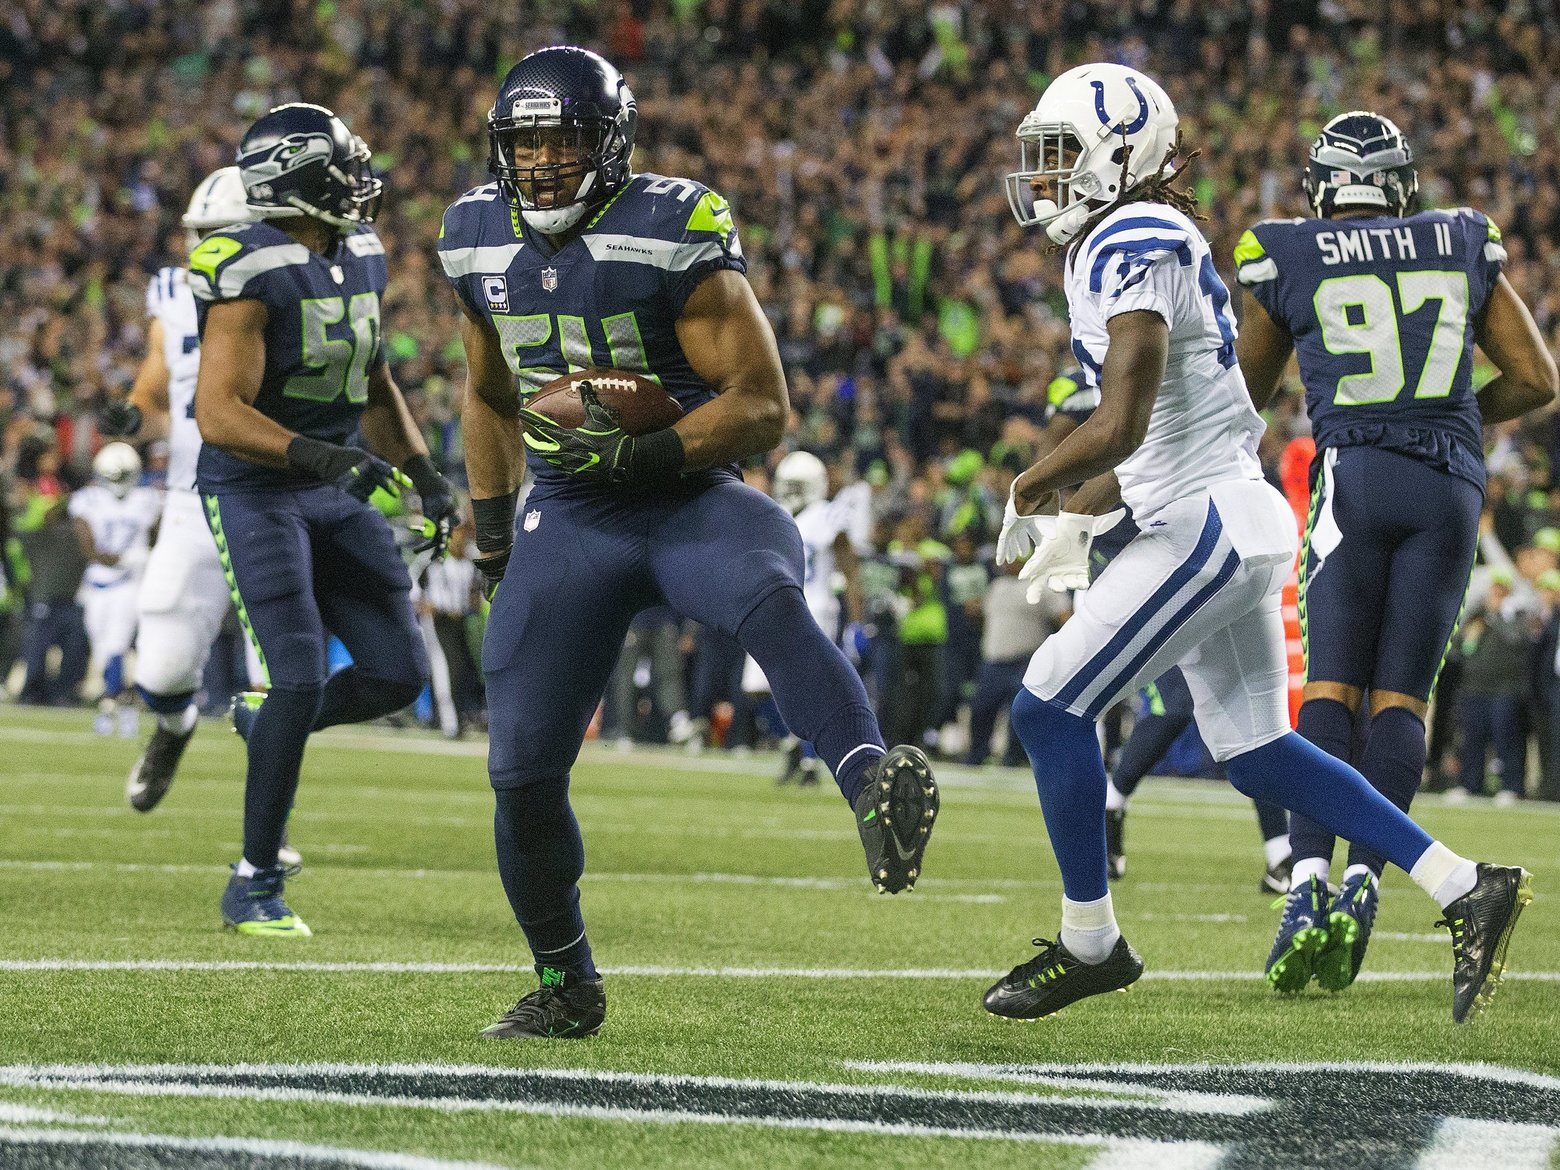 Seattle Seahawks' linebacker Bobby Wagner scores a fumble recovery TD against the Colts on Sunday Night Football (Mike Siegel / The Seattle Times)